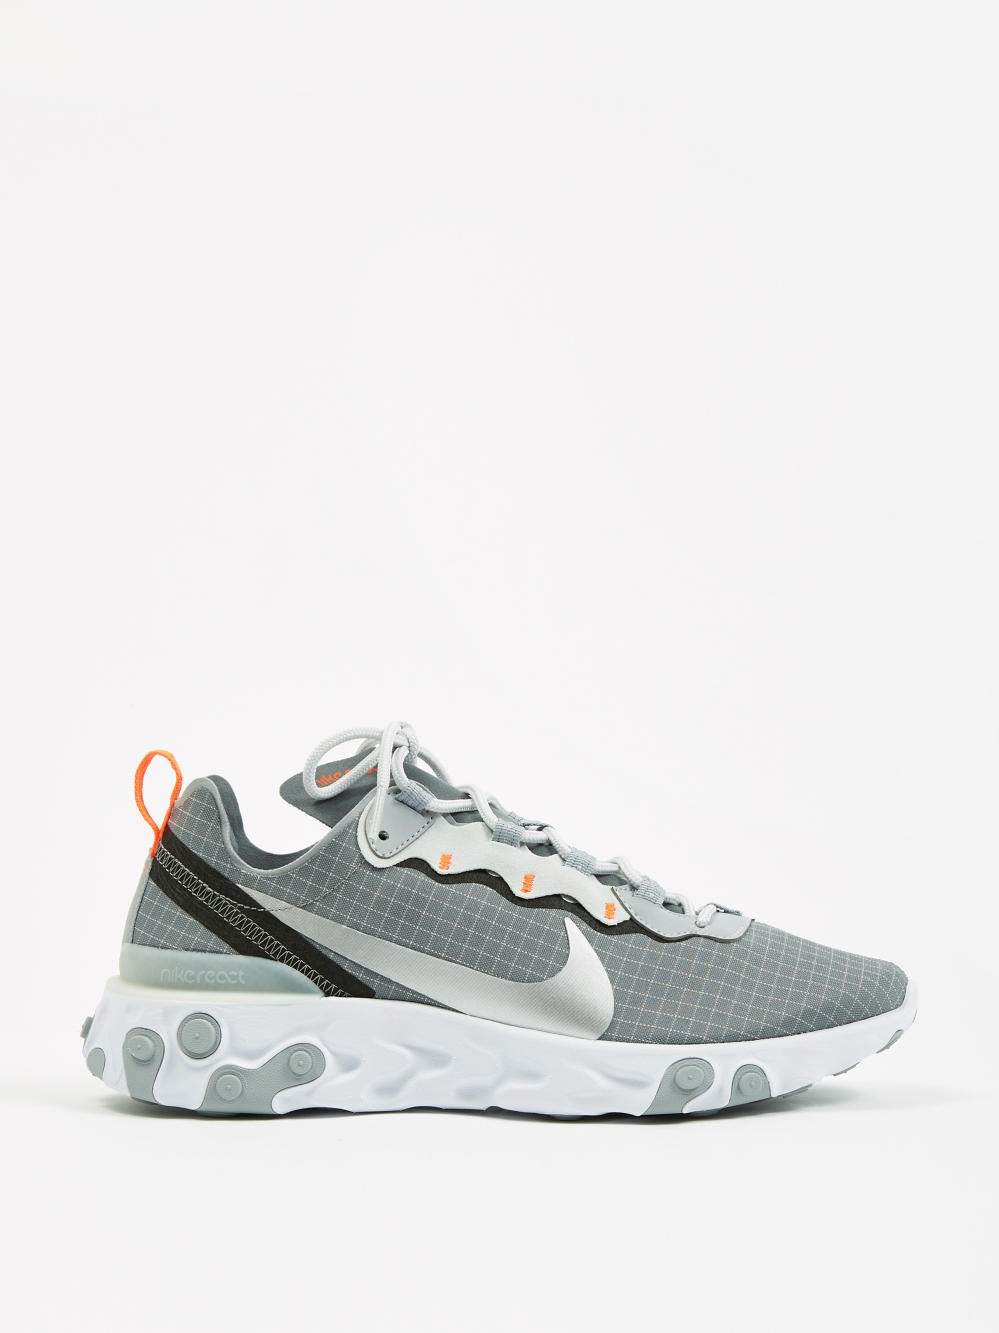 37fdcdfc6fcc Nike React Element 55 - Cool Grey Metallic Silver-Hyper Crimson (Image 1